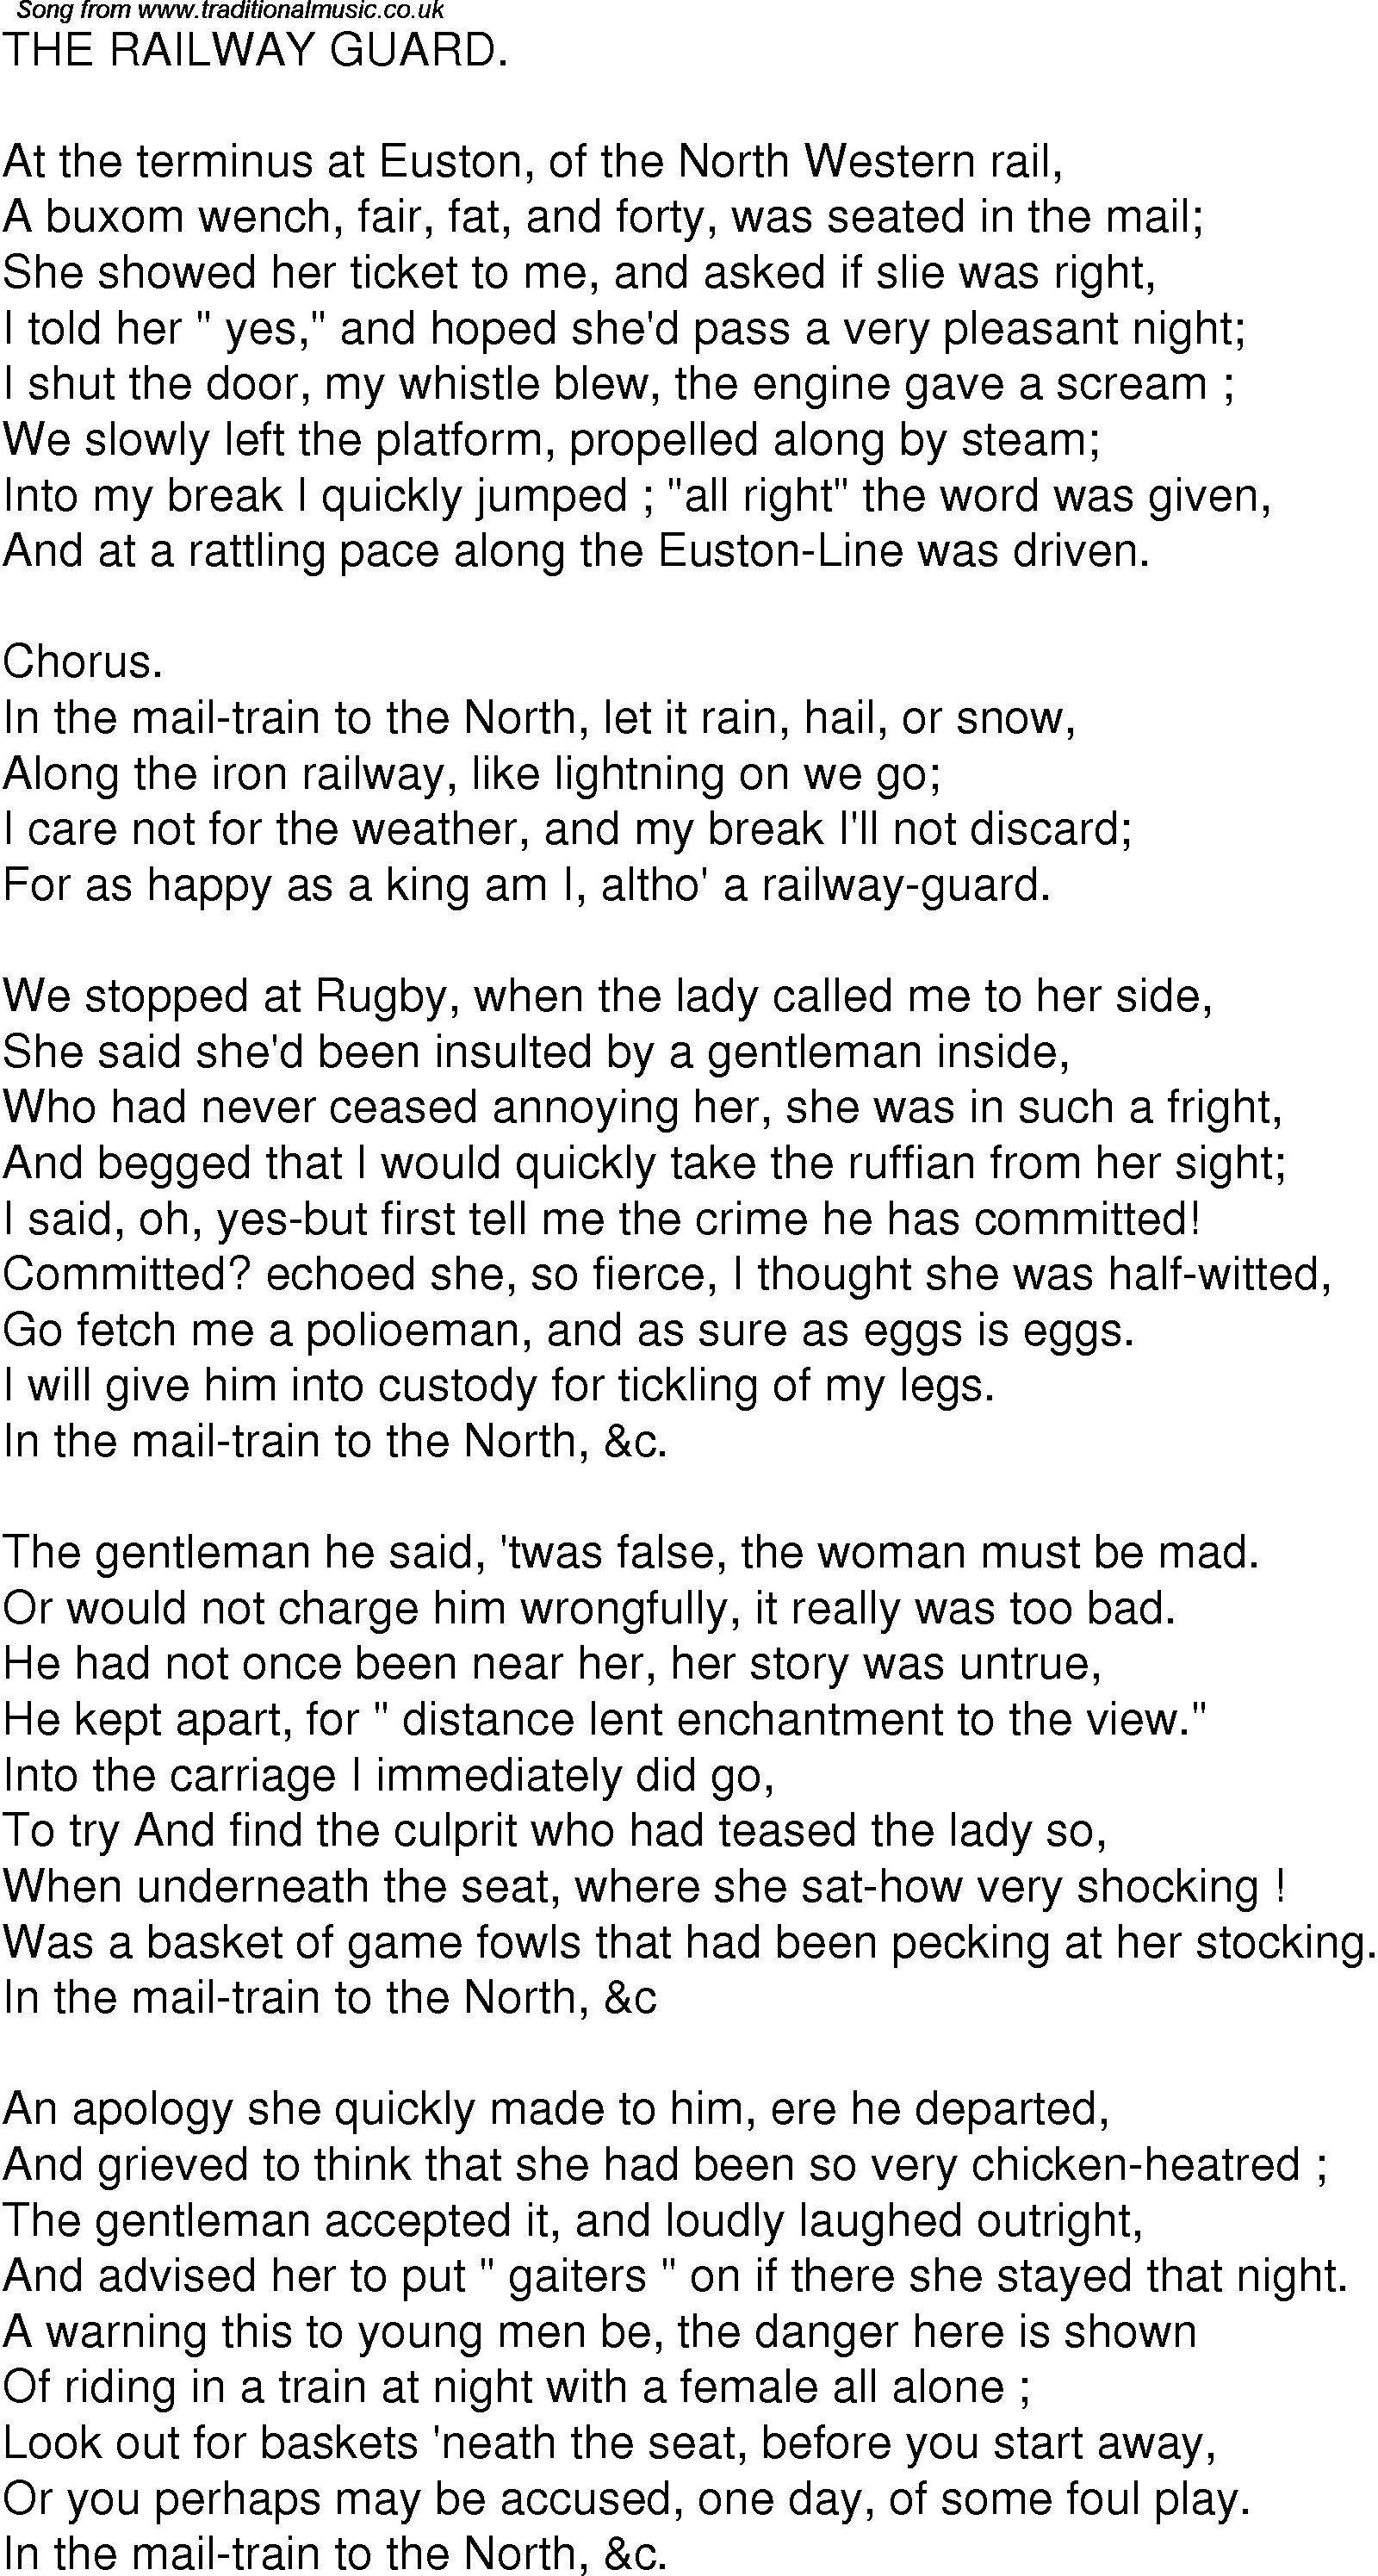 Old Time Song Lyrics for 07 The Railway Guard